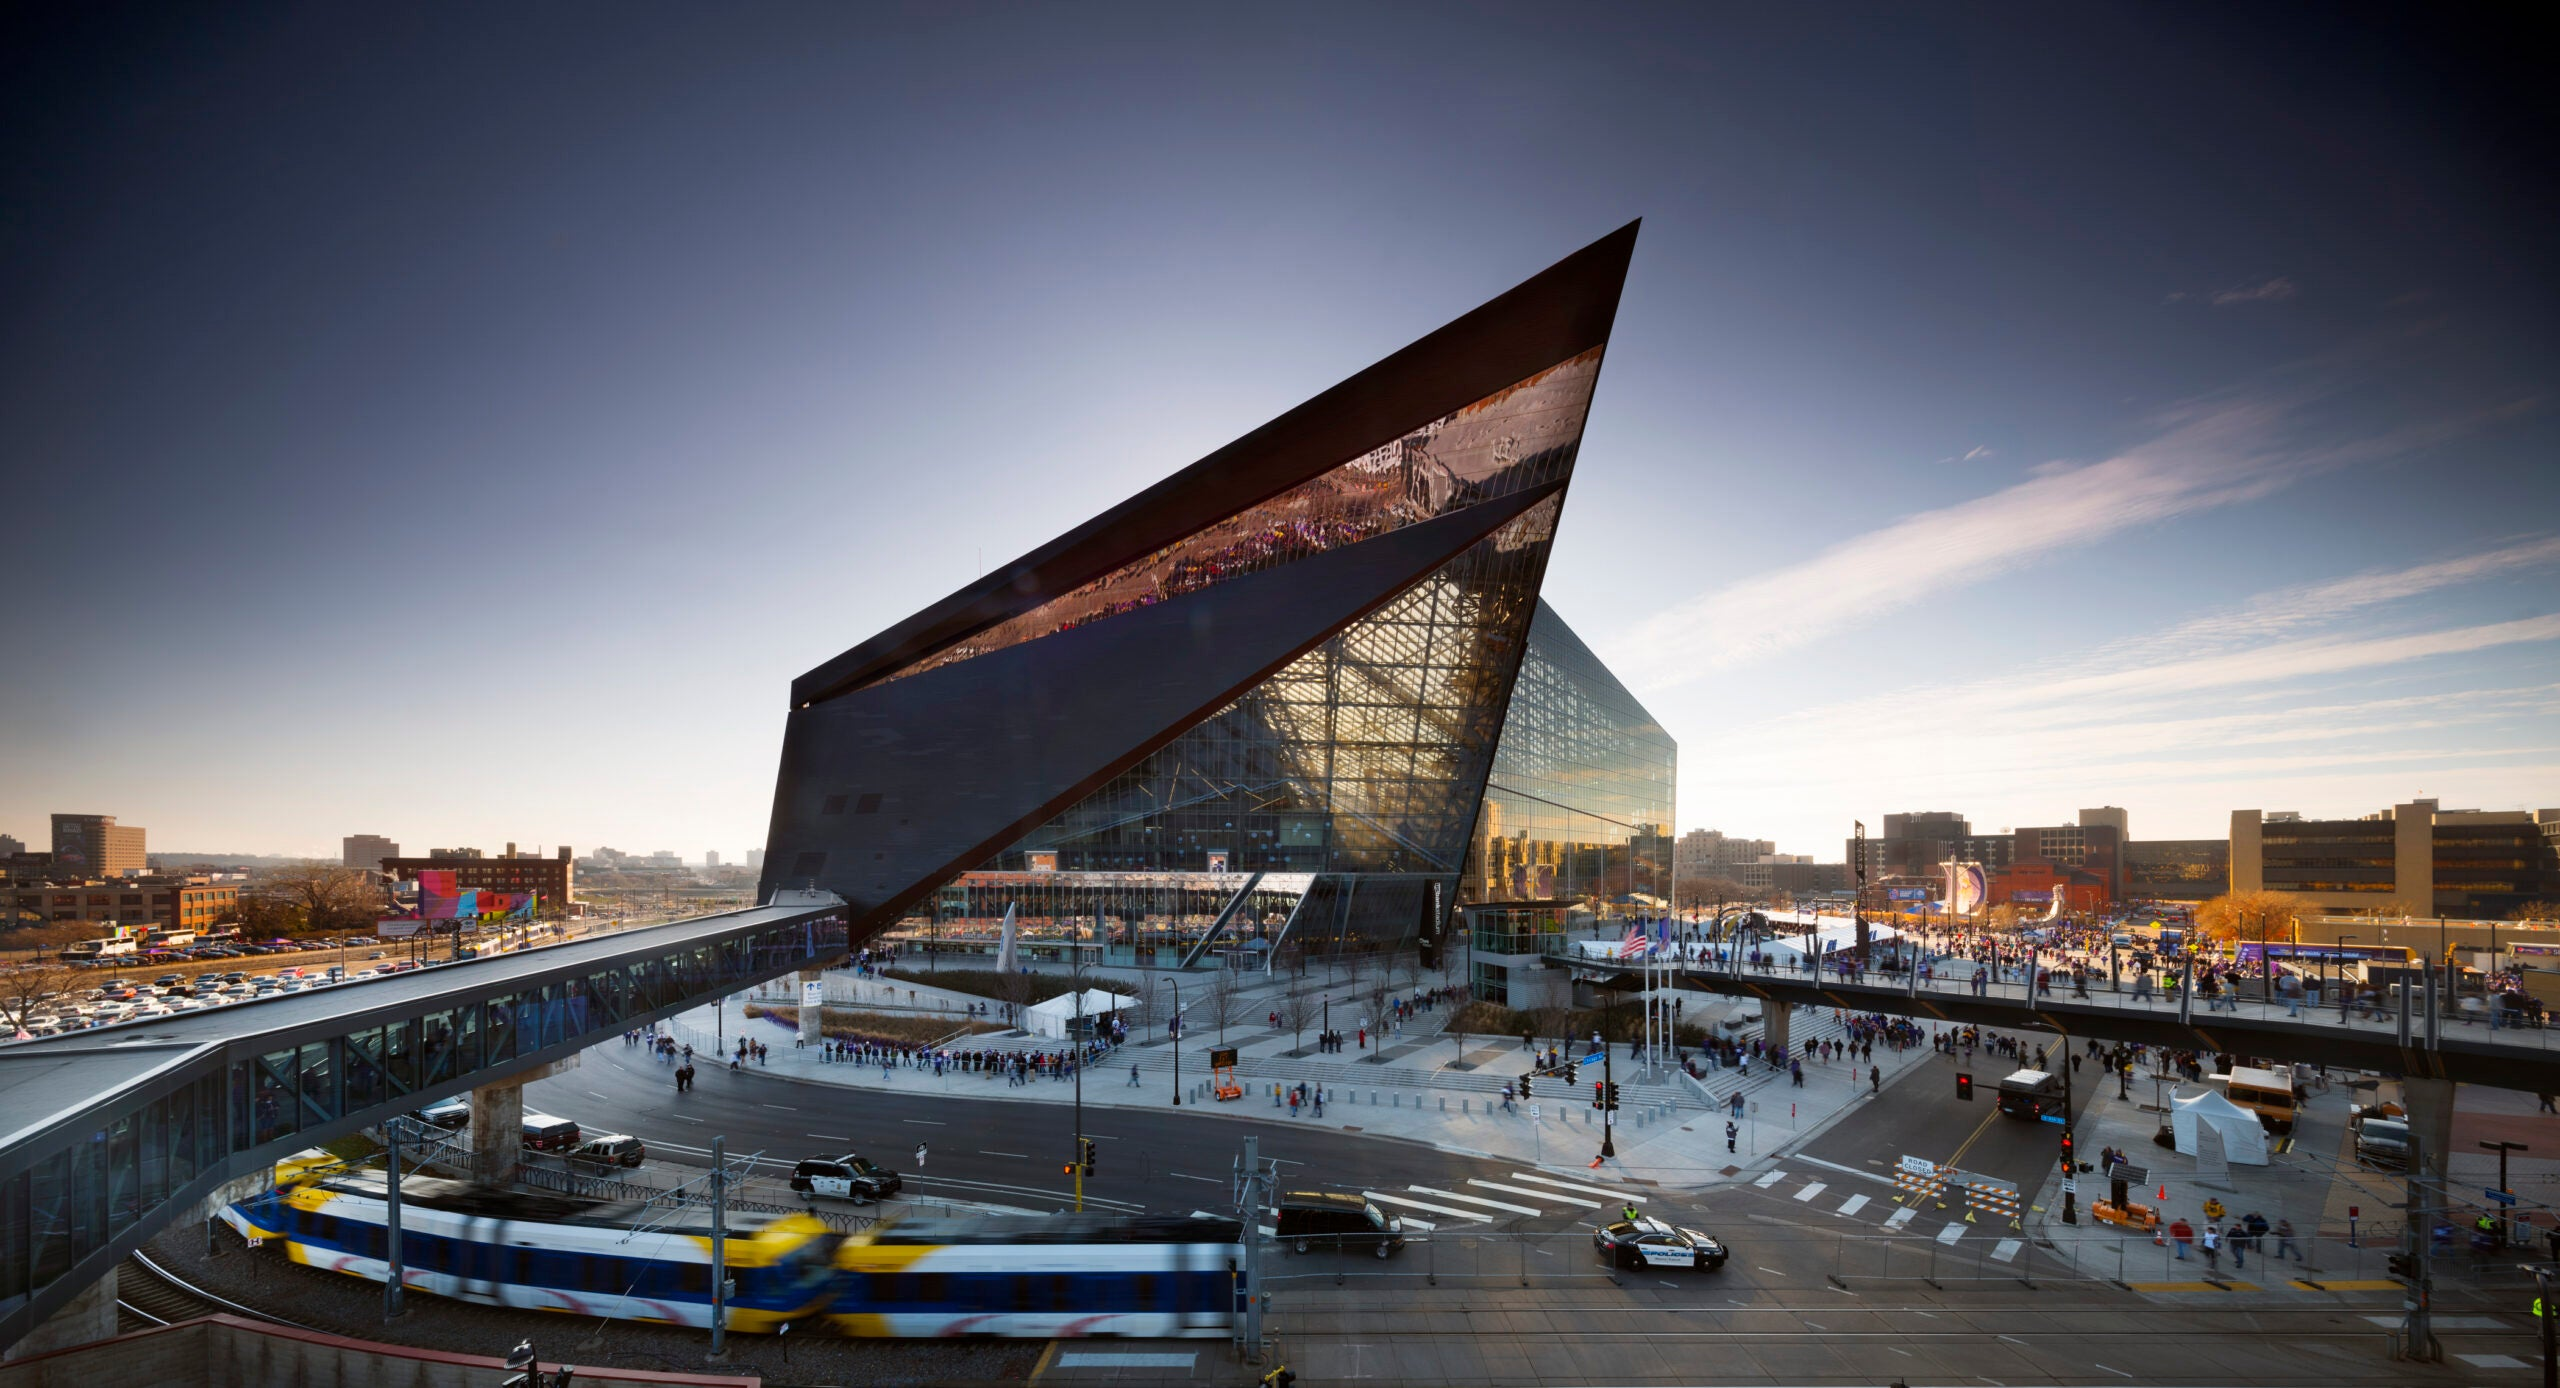 A look at the engineering and architecture in this year's Super Bowl stadium